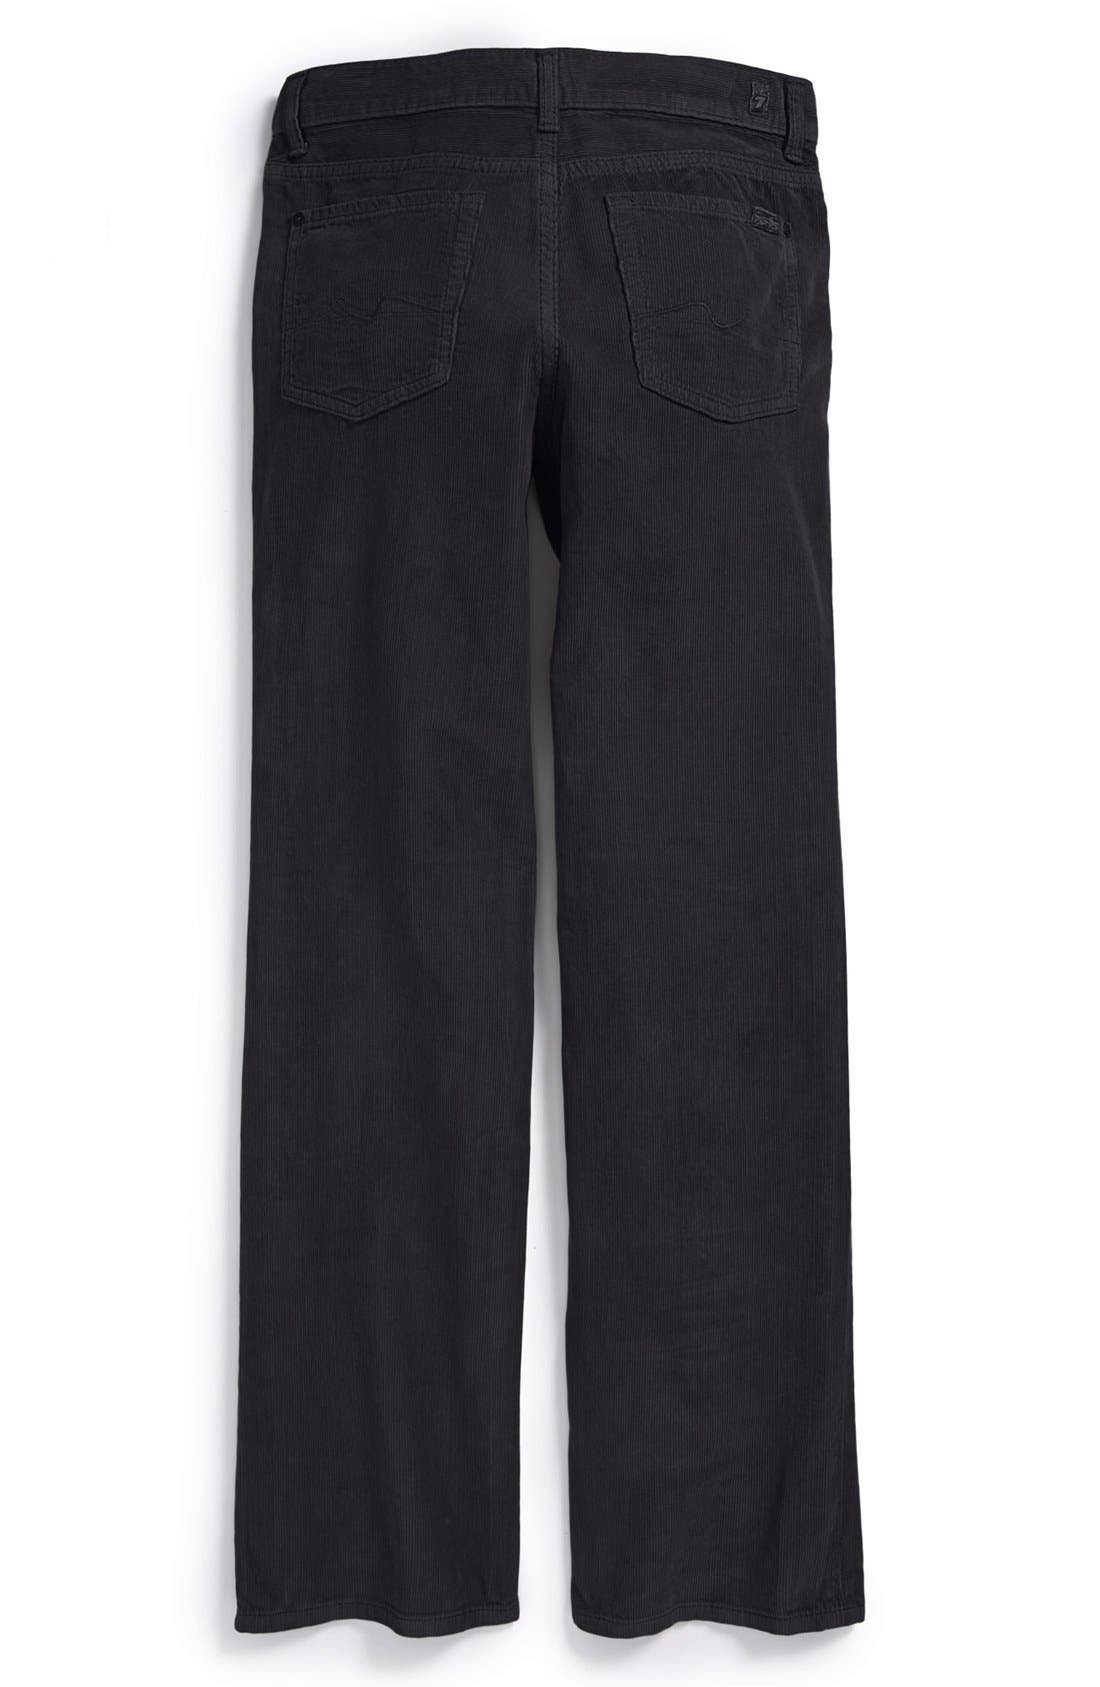 Alternate Image 1 Selected - 7 For All Mankind® 'Standard' Straight Leg Corduroy Pants (Big Boys)